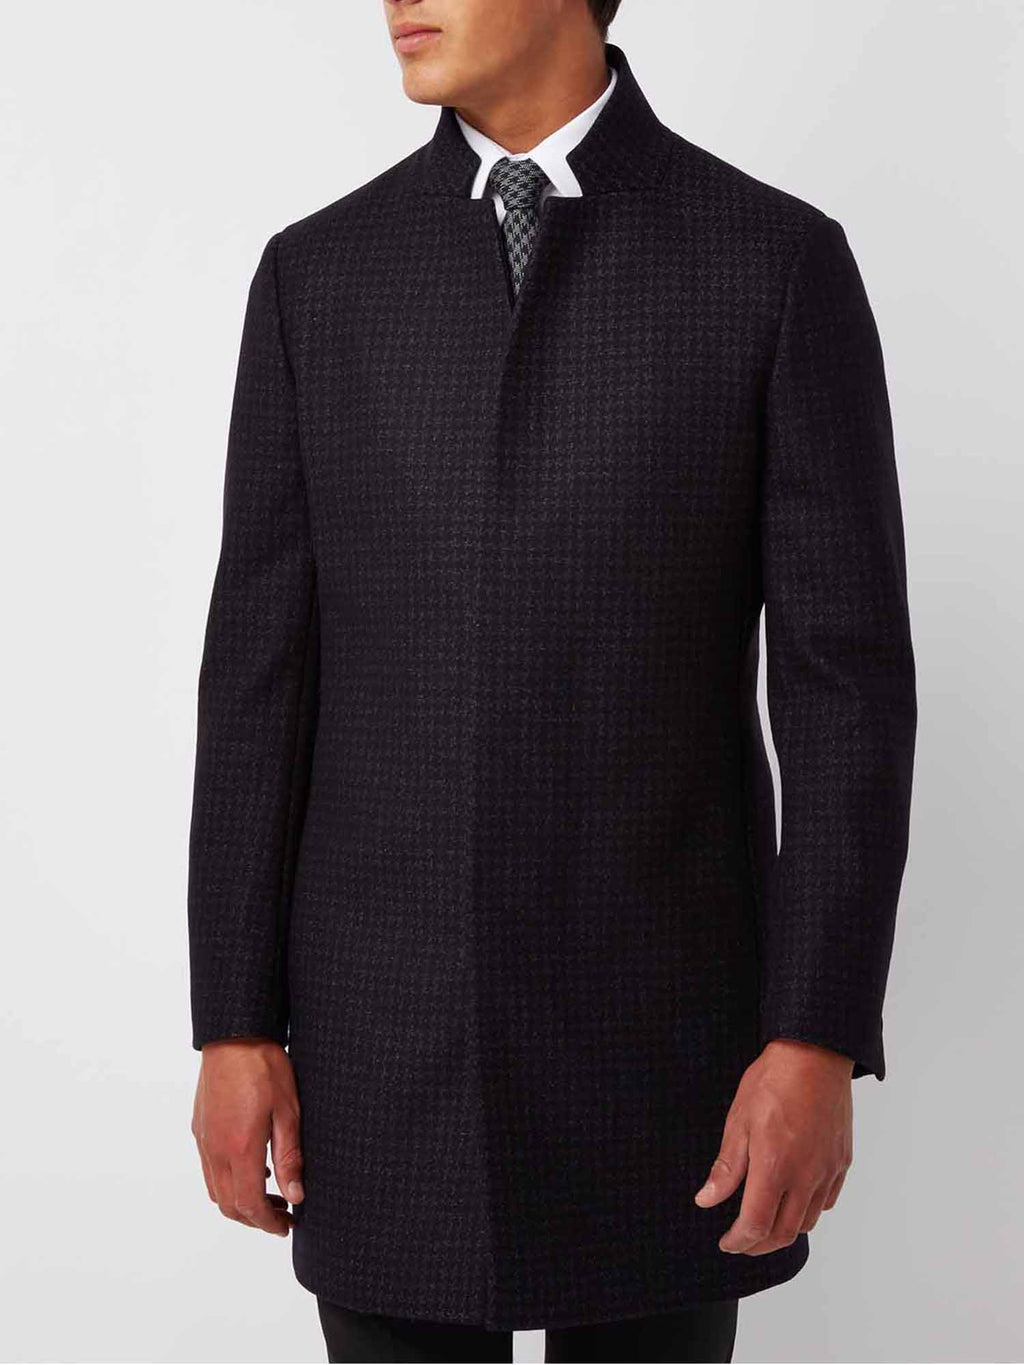 Mens overcoat navy check by remus uomo